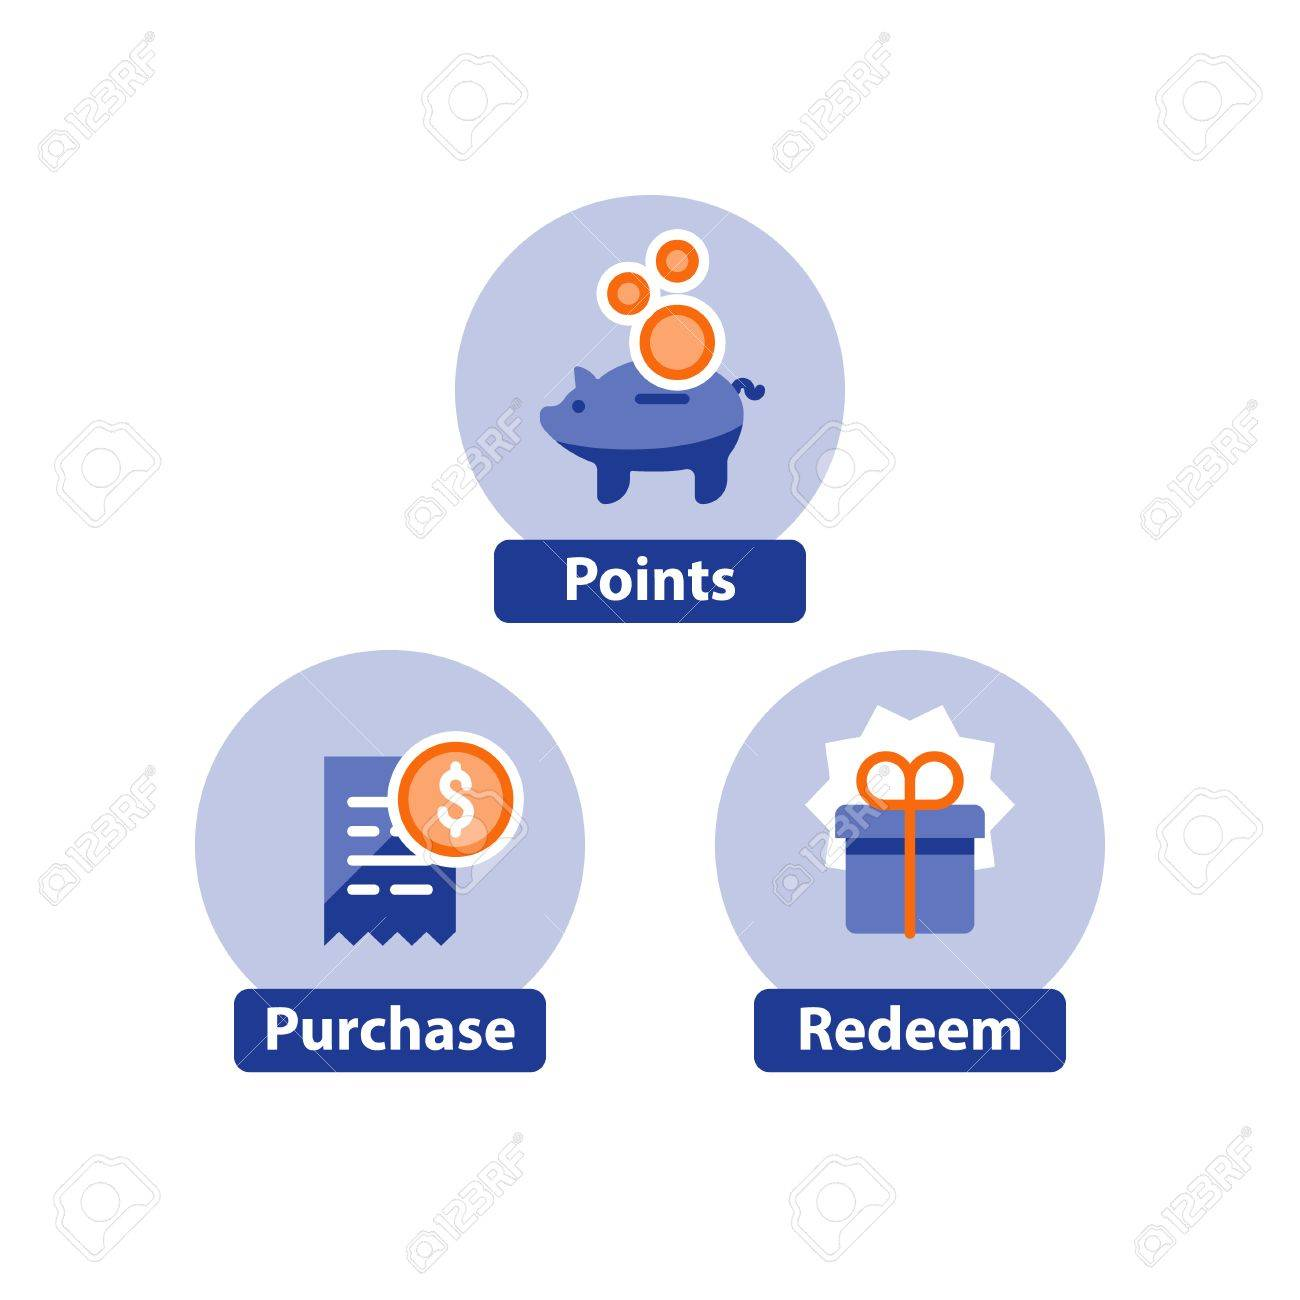 3661dbe698 Earn Points For Purchase Concept